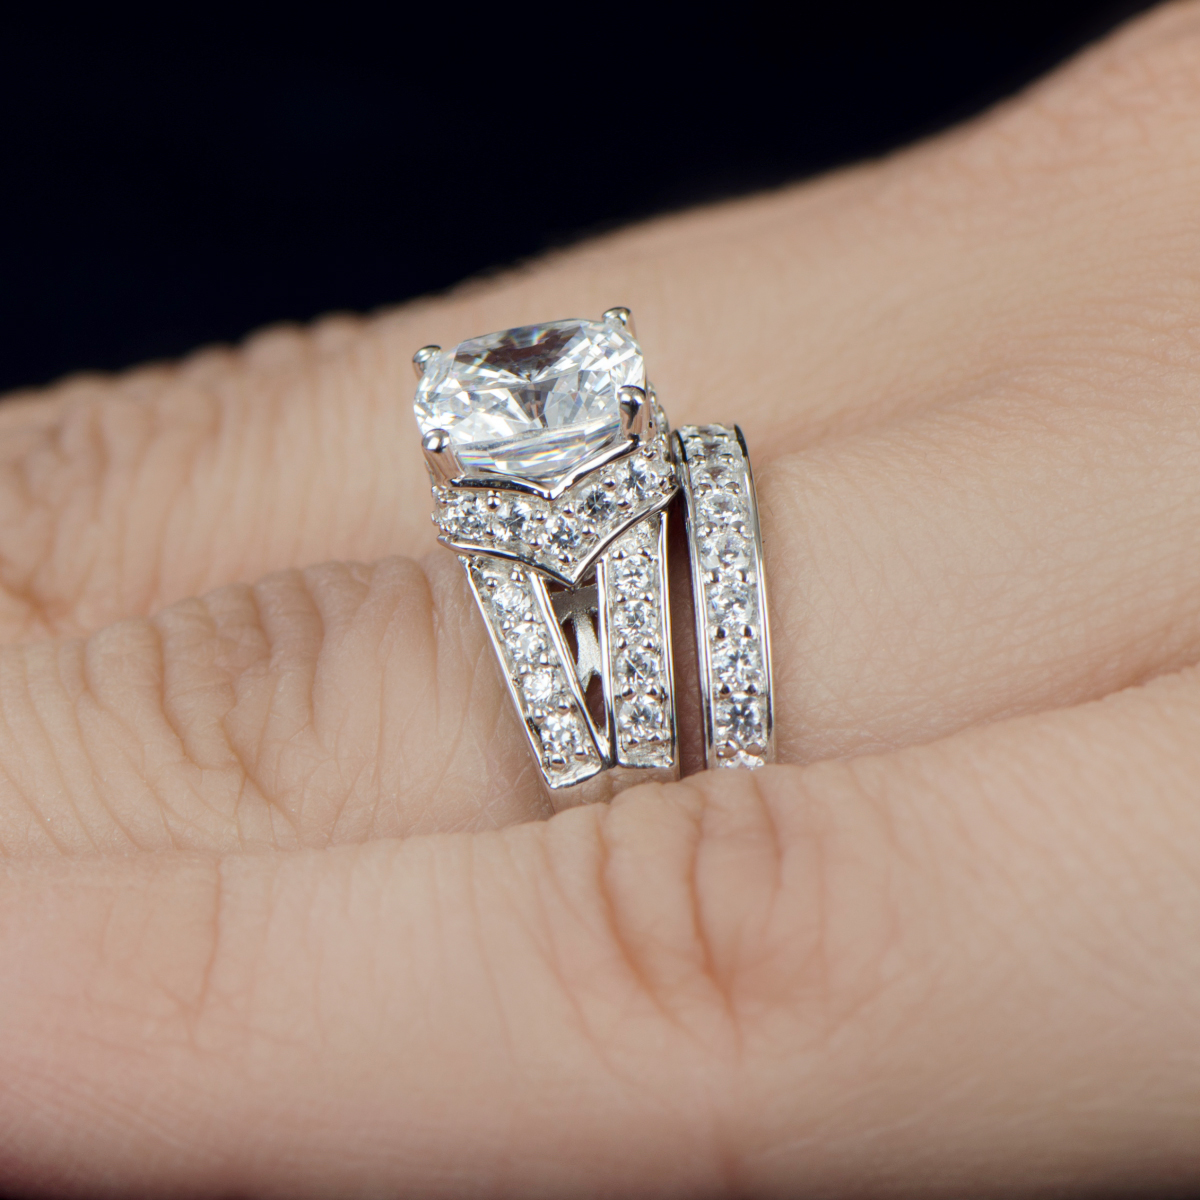 marinelczengagementring wedding rings set Marinel s Wedding Ring Set Cushion Cut CZ